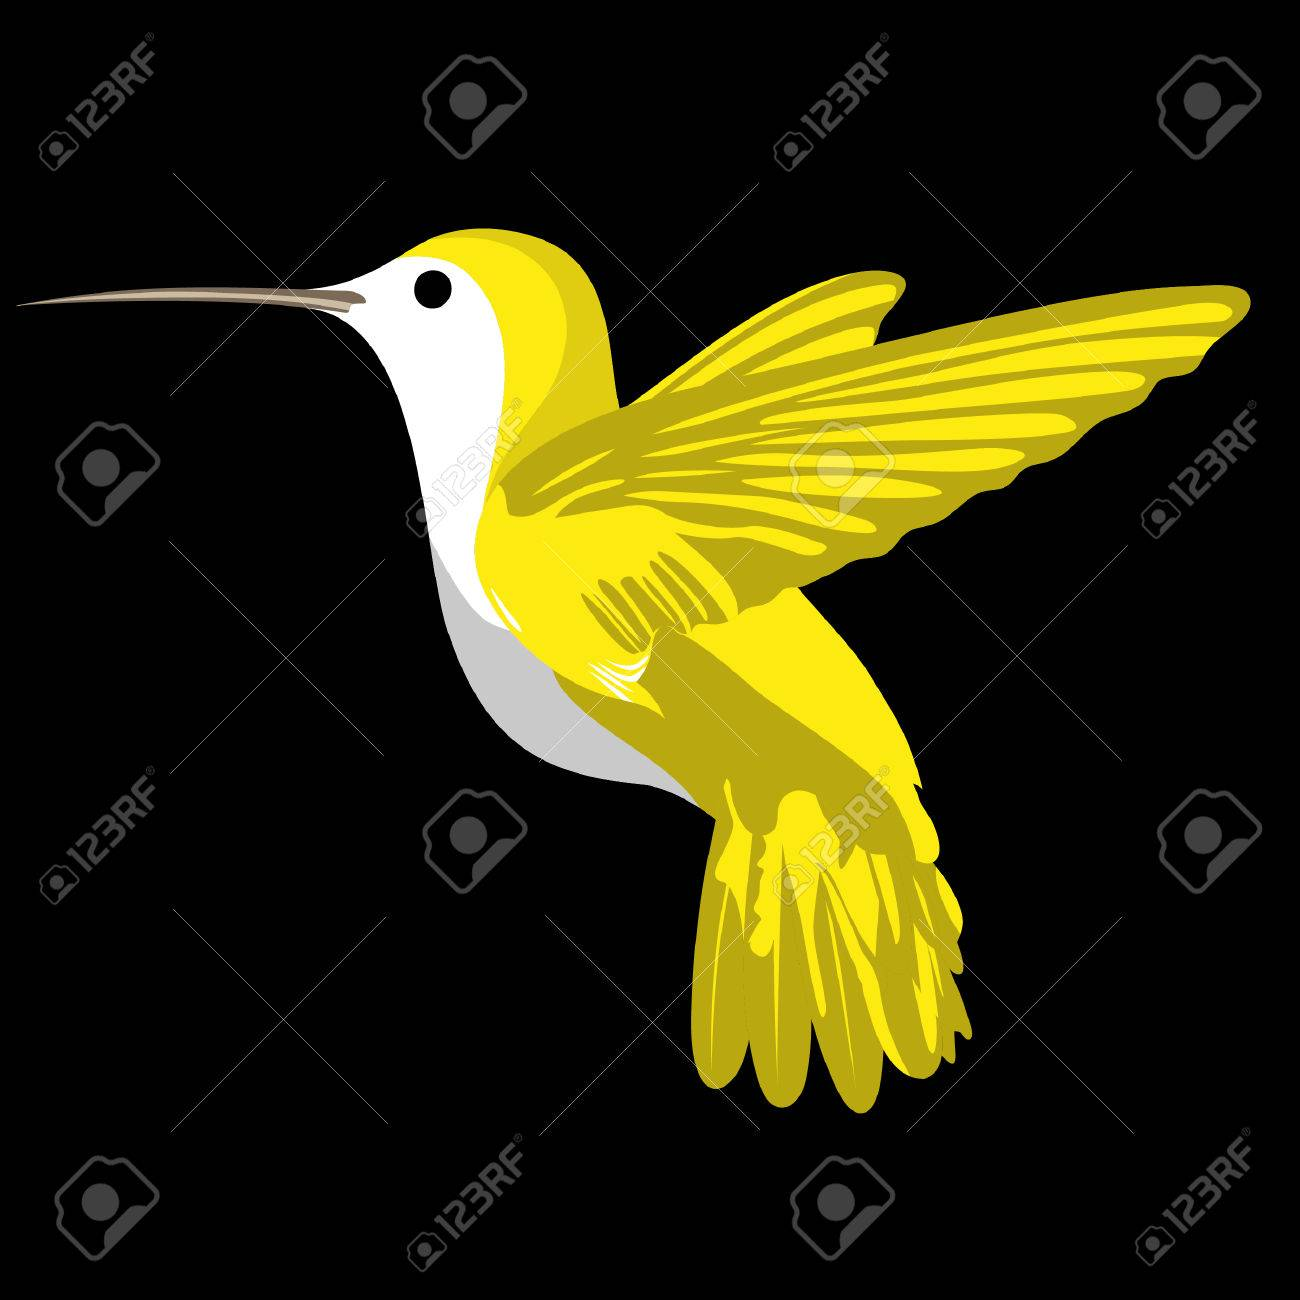 Set with africa animals black white stock vector 169 insima - Profile Wings Cute Humming Bird On Black Background Illustration